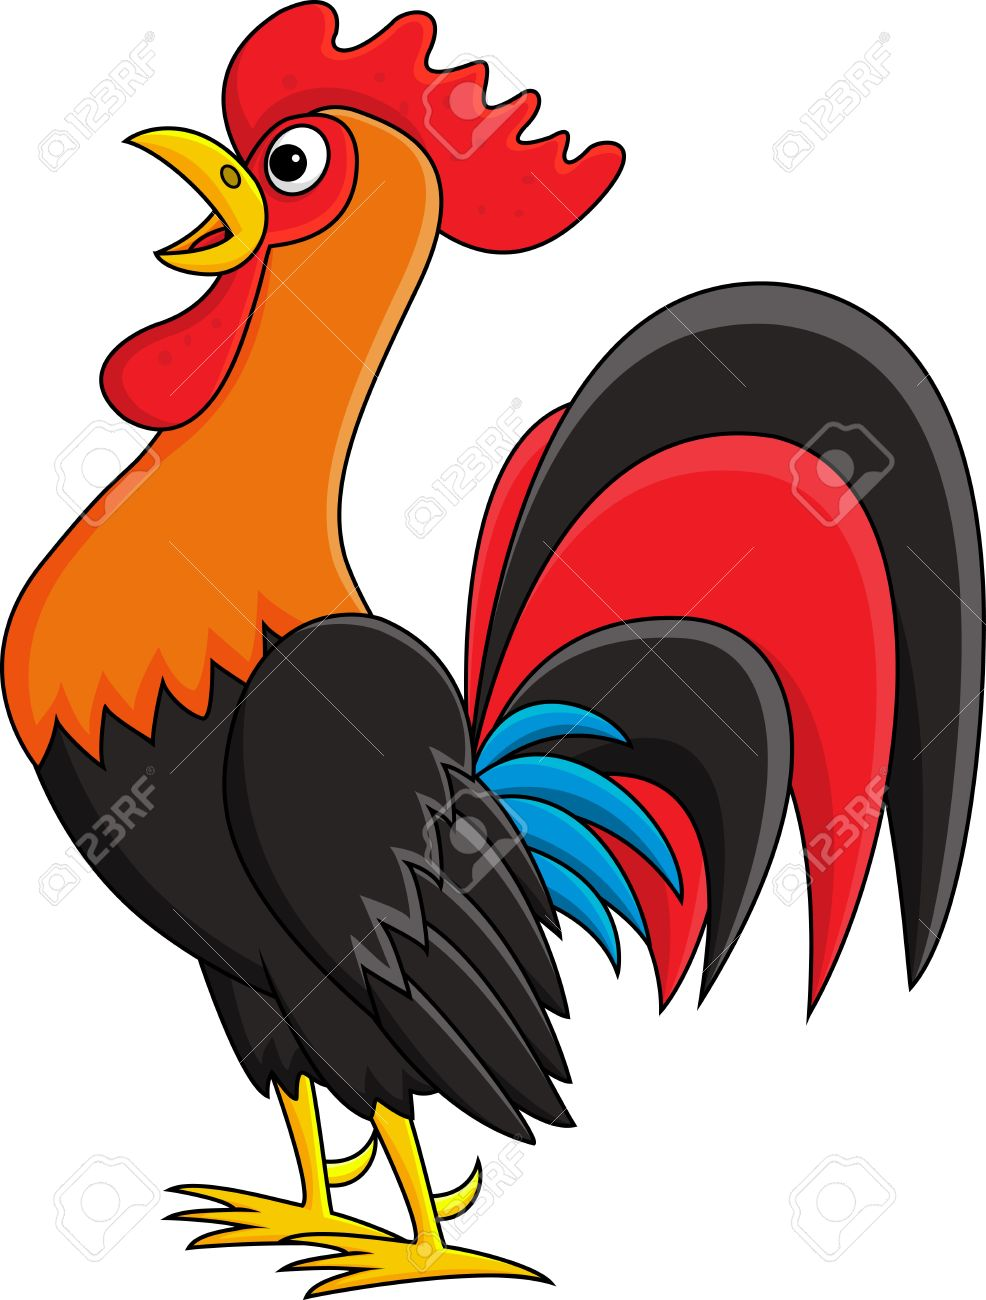 rooster cartoon royalty free cliparts vectors and stock